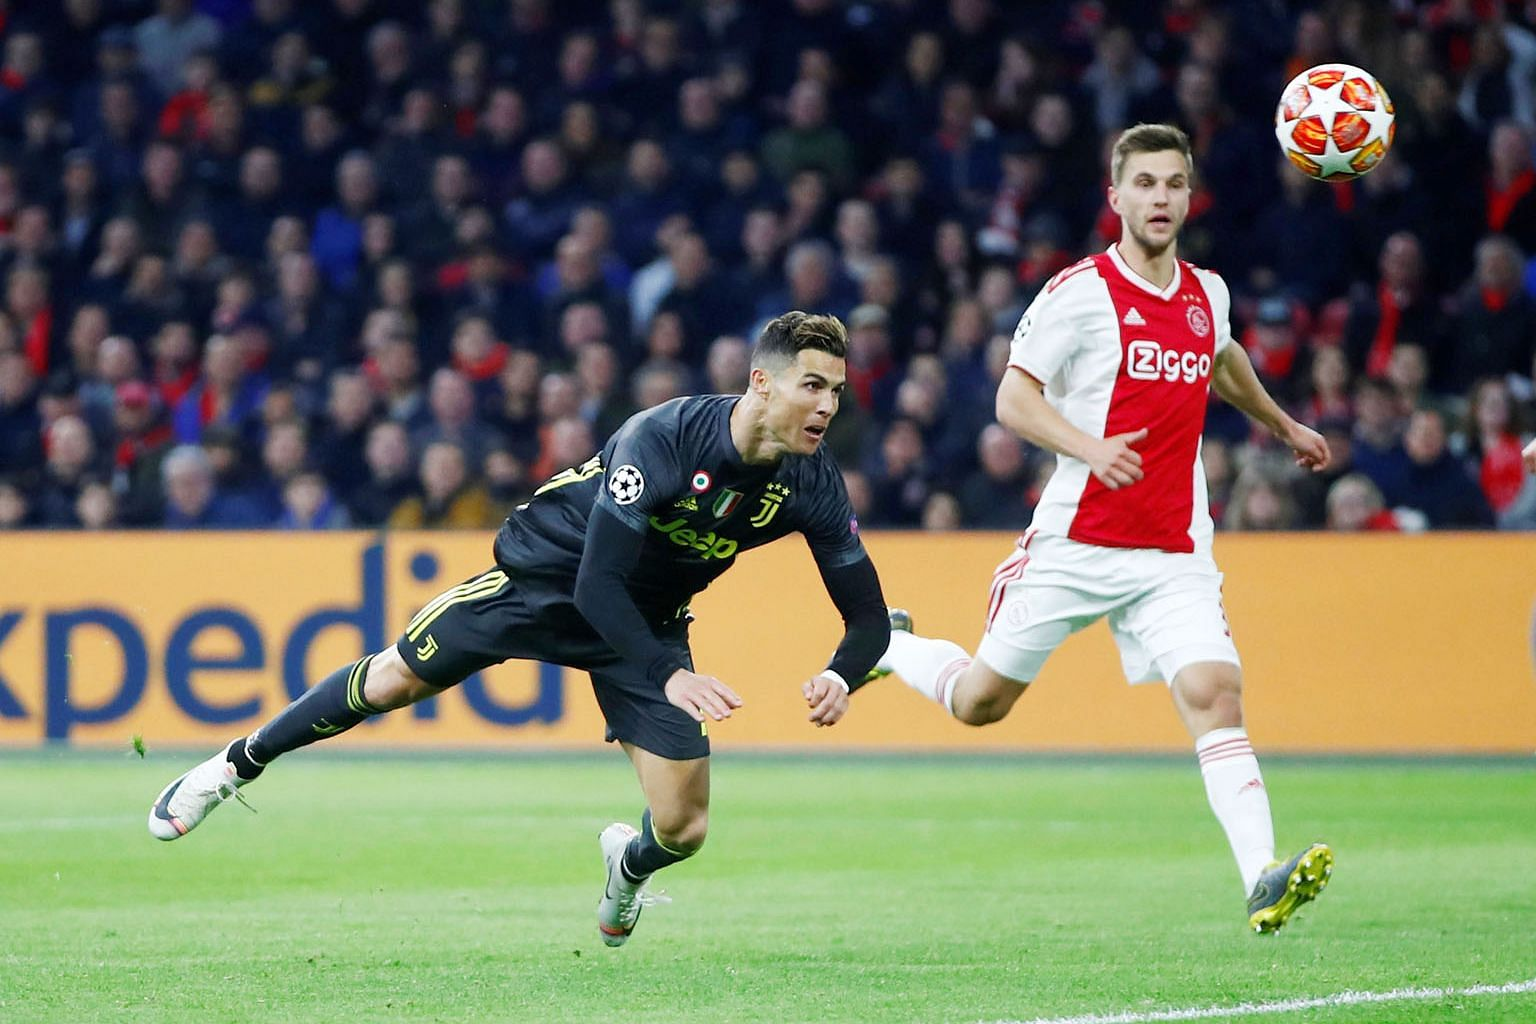 Cristiano Ronaldo scoring with a diving header on the stroke of half-time to give Juventus a precious away goal against Ajax in the 1-1 draw in the Champions League quarter-final first leg in Amsterdam on Wednesday.